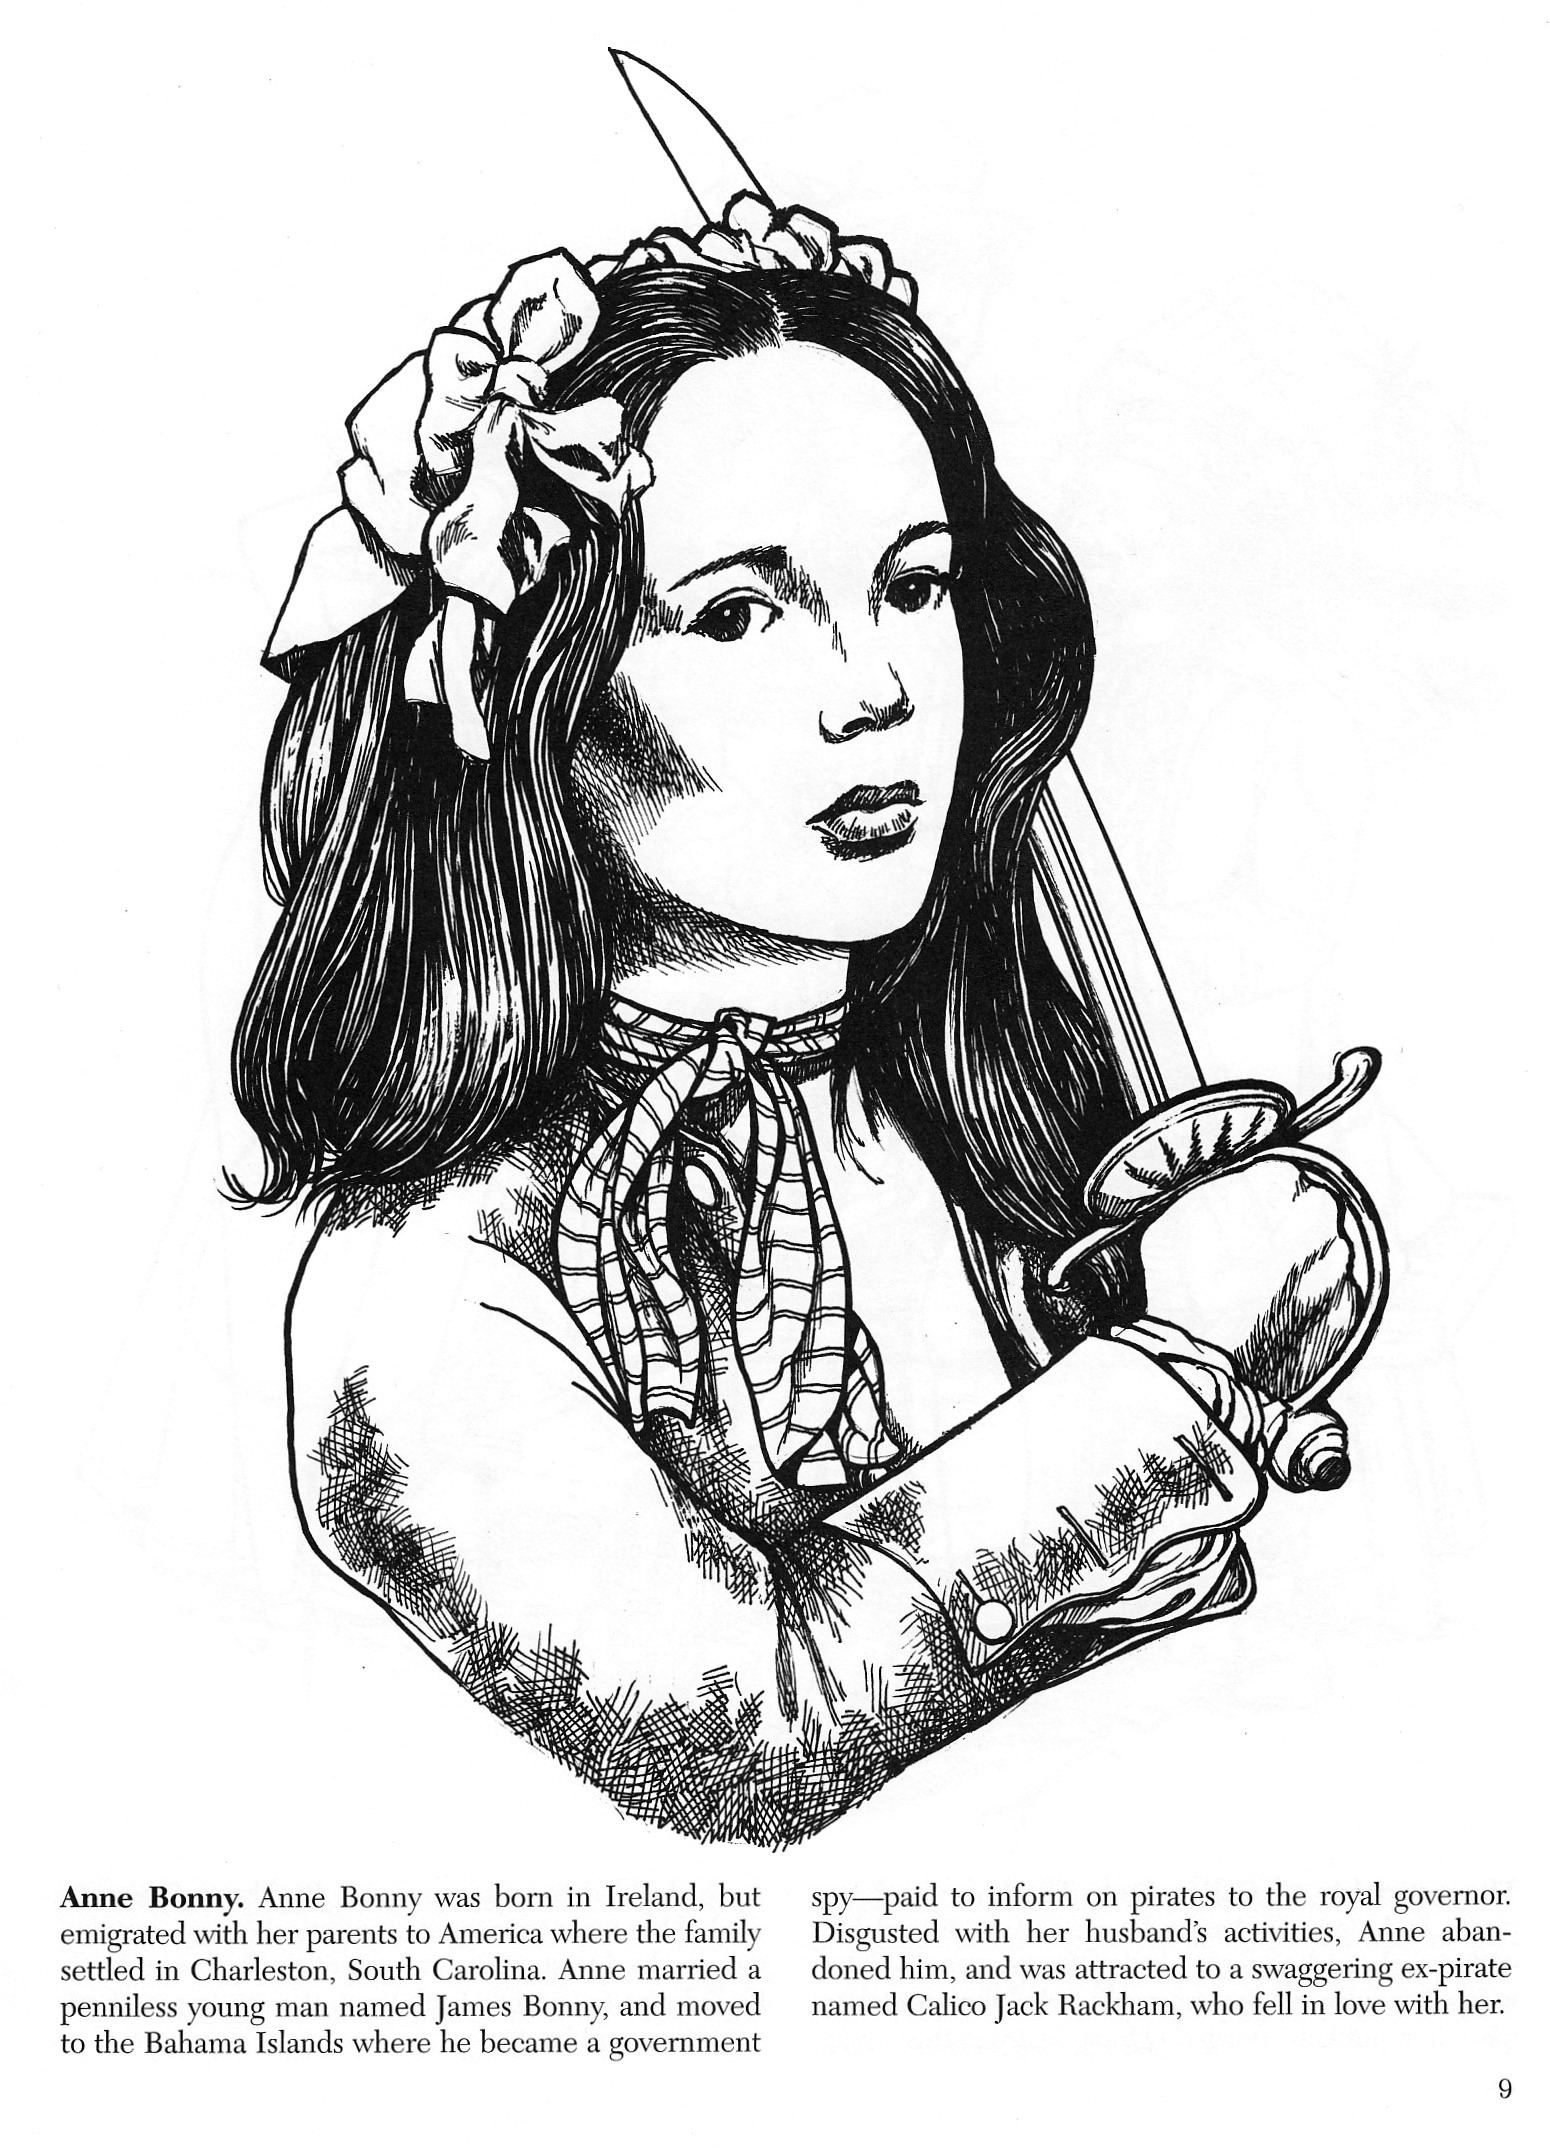 mary read anne bonny coloring book_0003